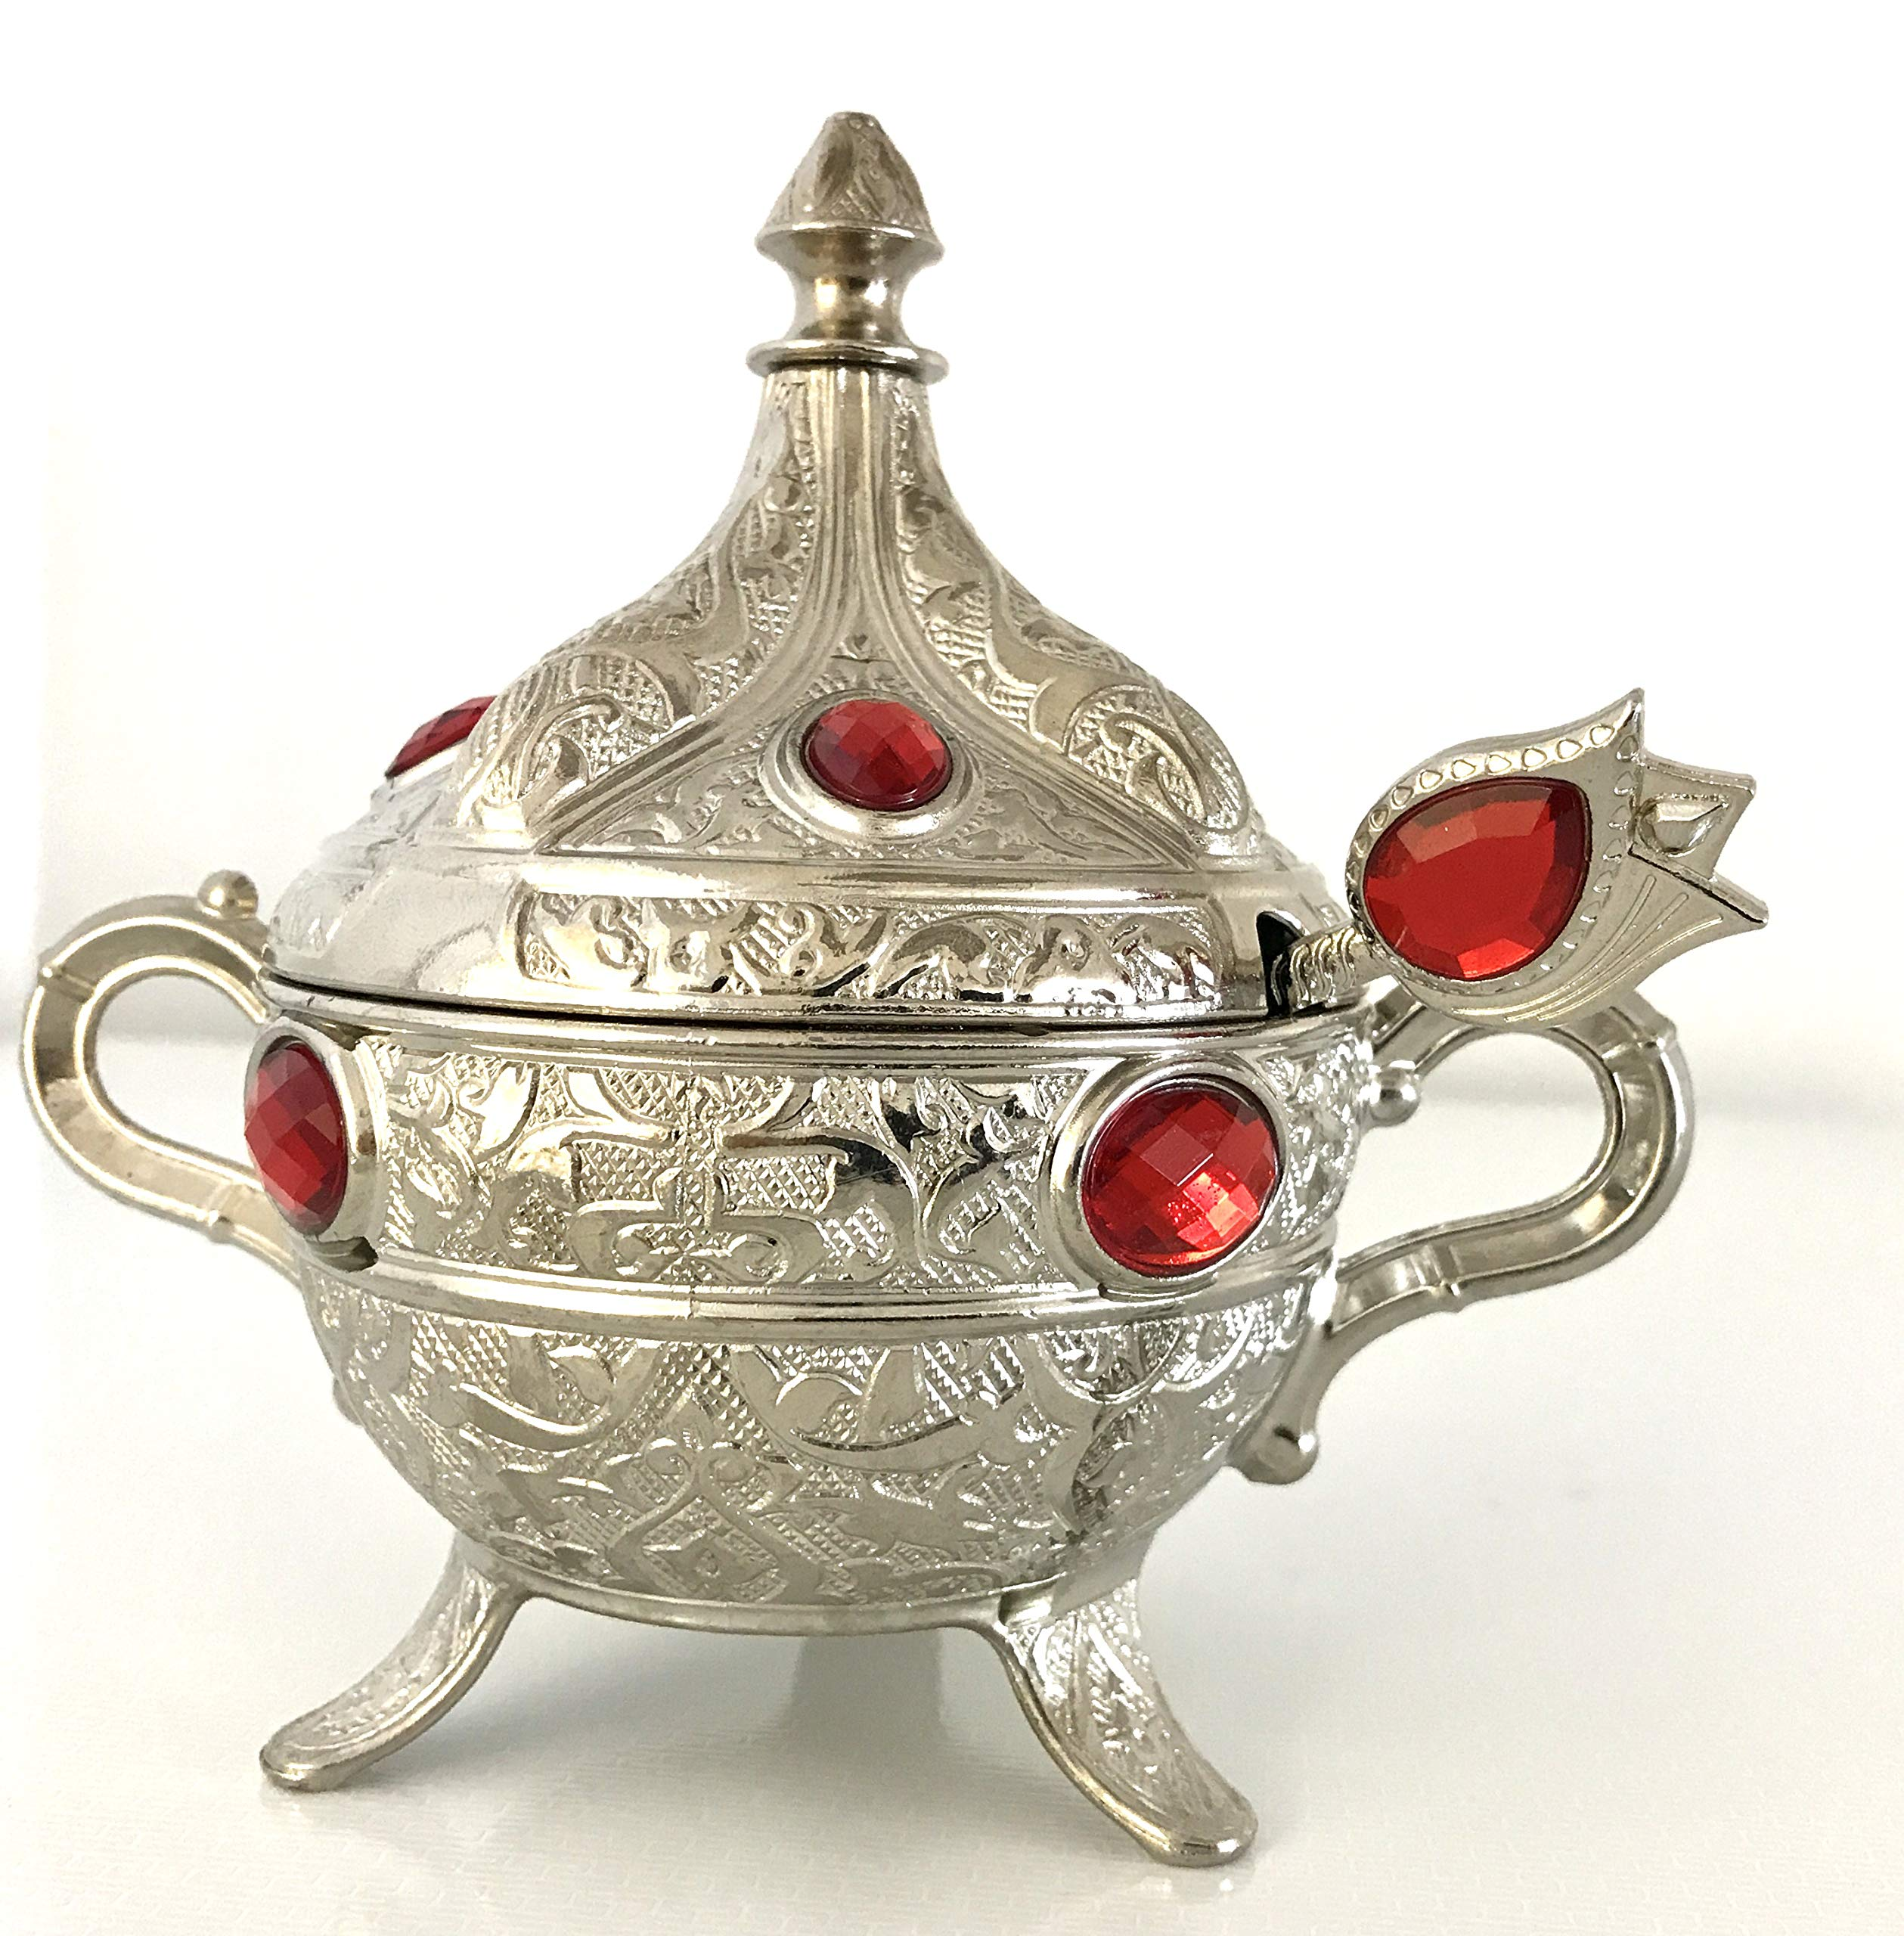 Traditional Turkish Ottoman Serving Bowl Sugar, Turkish Delight, Candy Bowl with Spoon